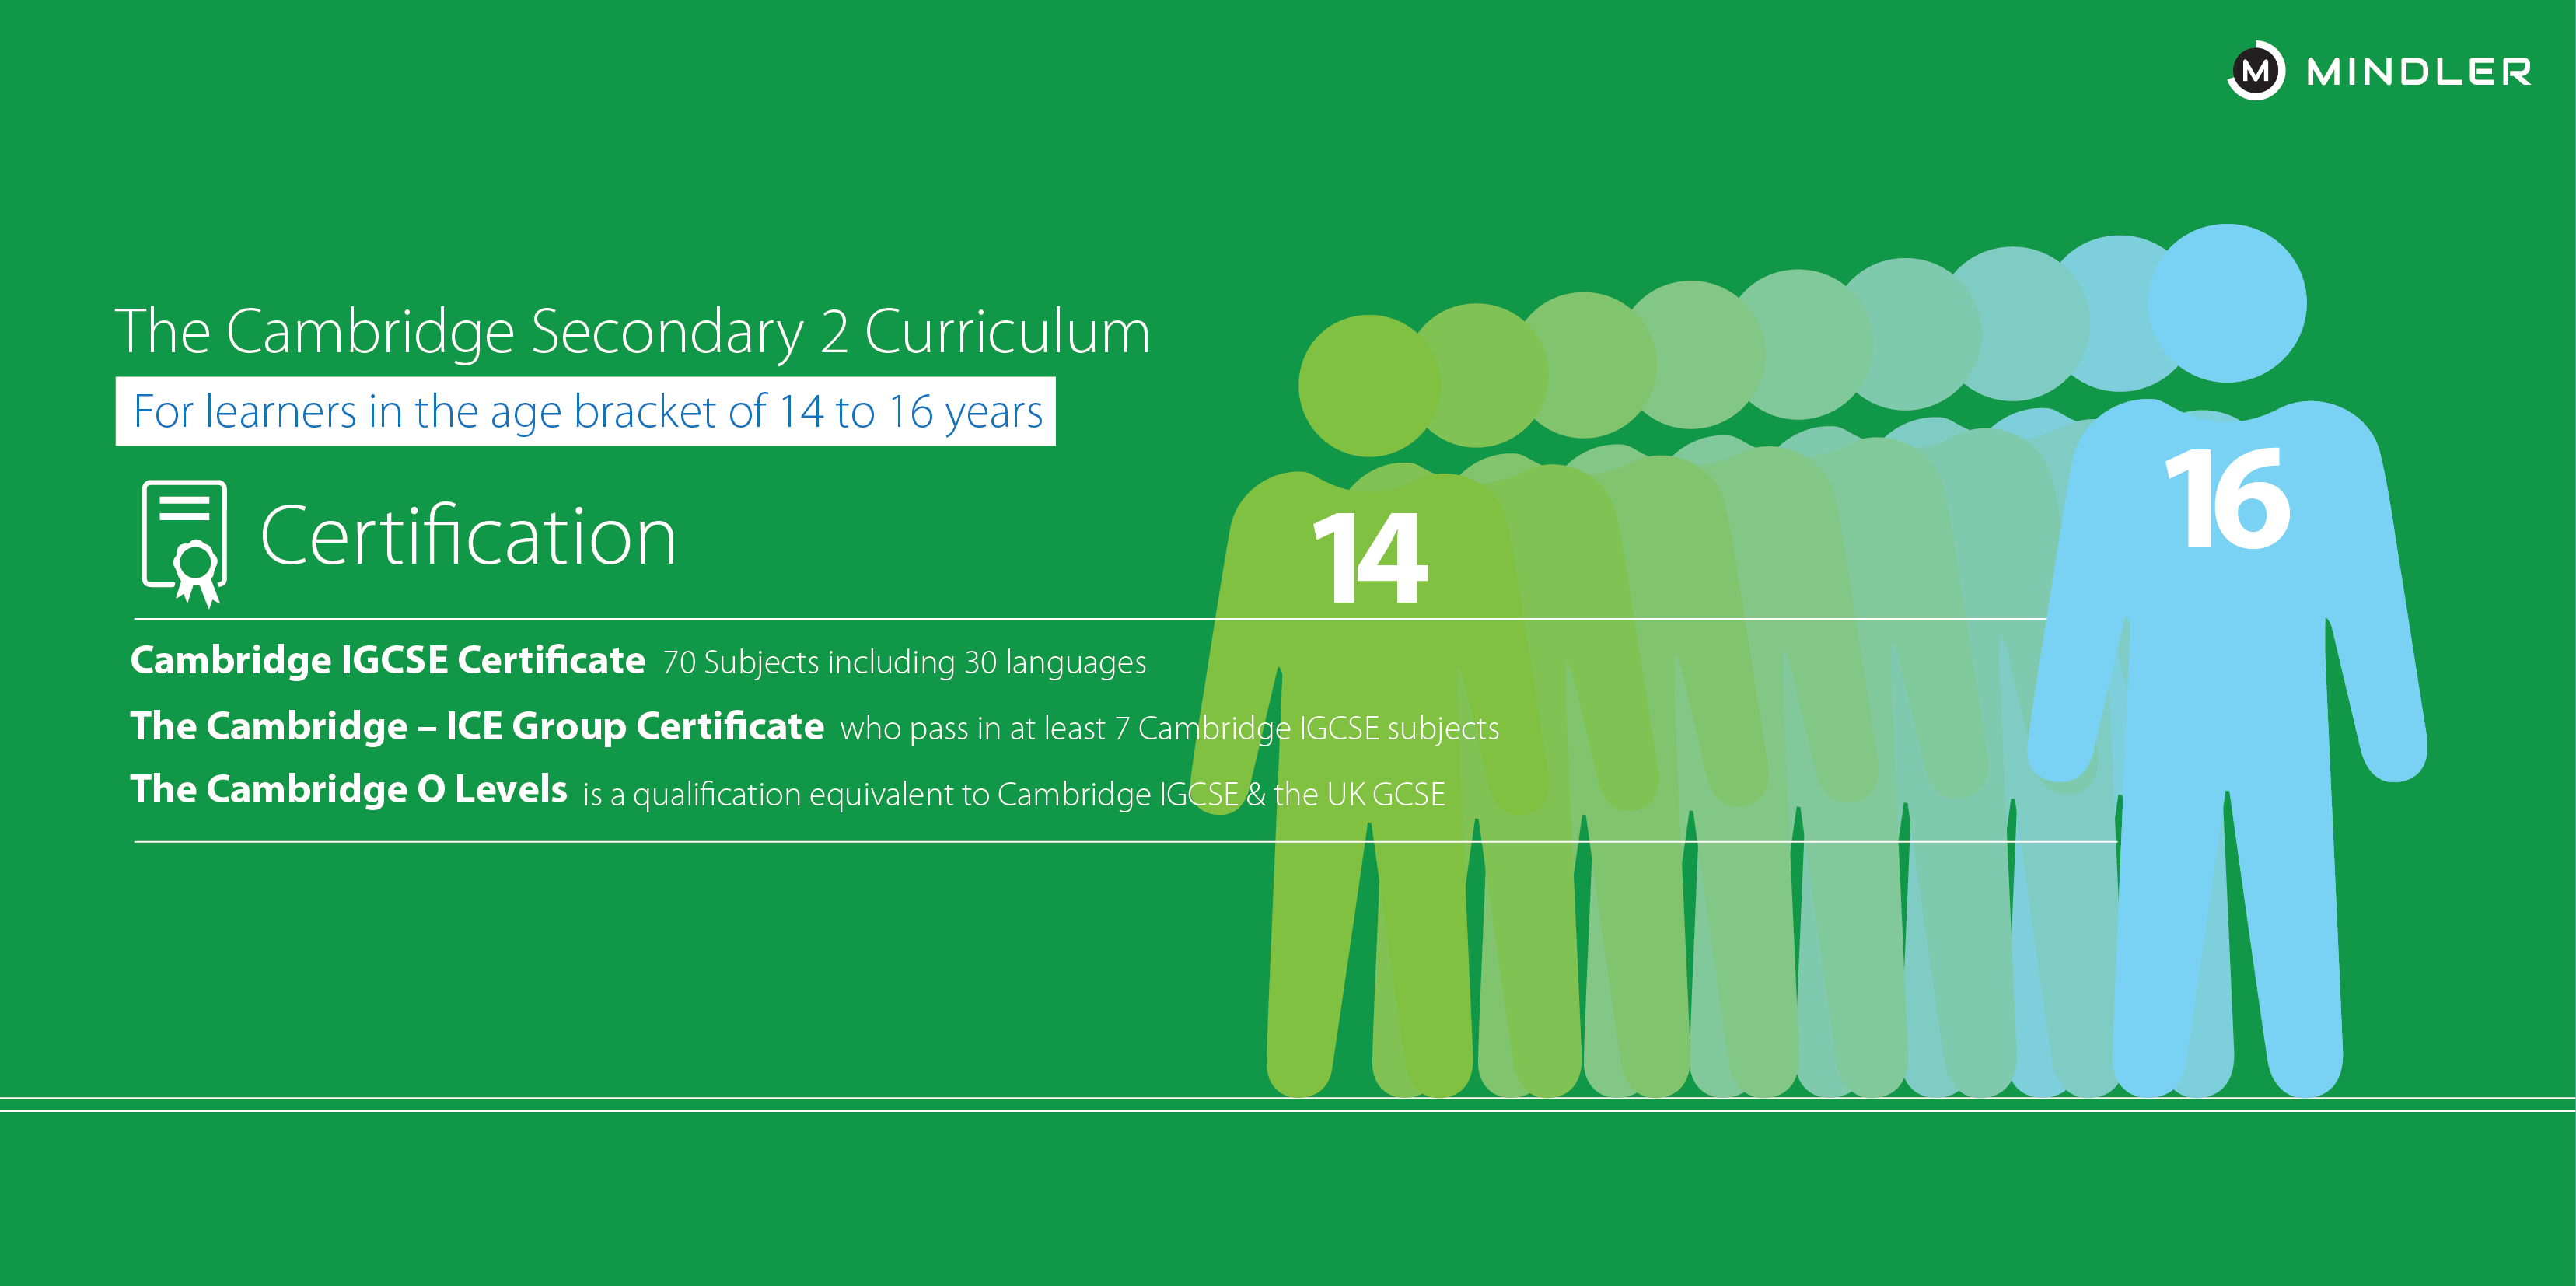 cambridge-board-secondary-curriculum